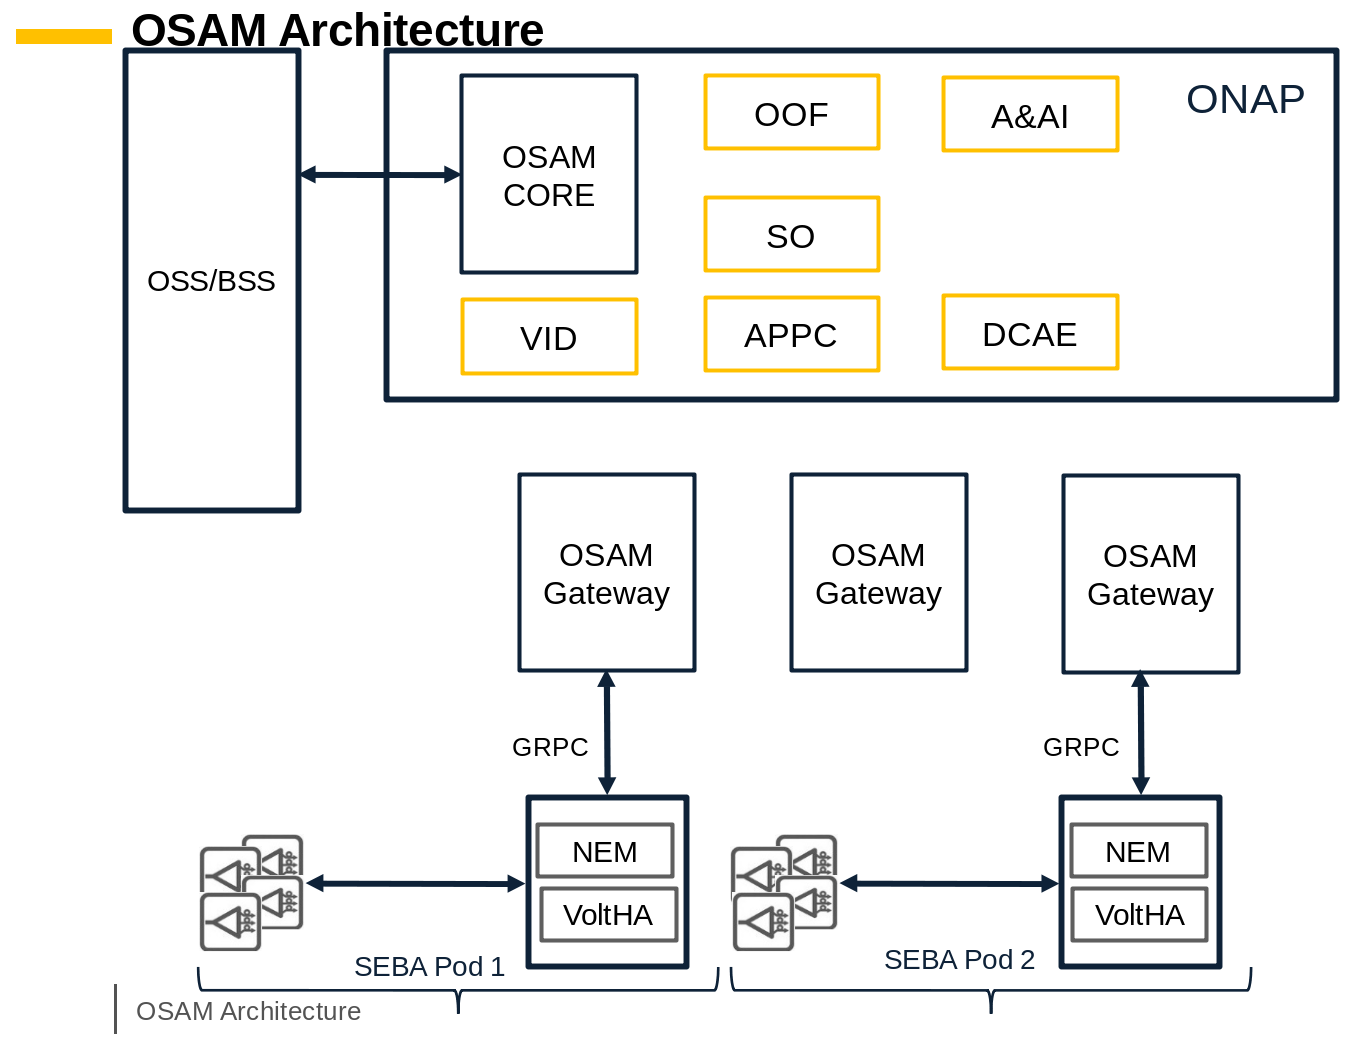 OpenSource Access Manager (OSAM) Use Case - Developer Wiki - Confluence